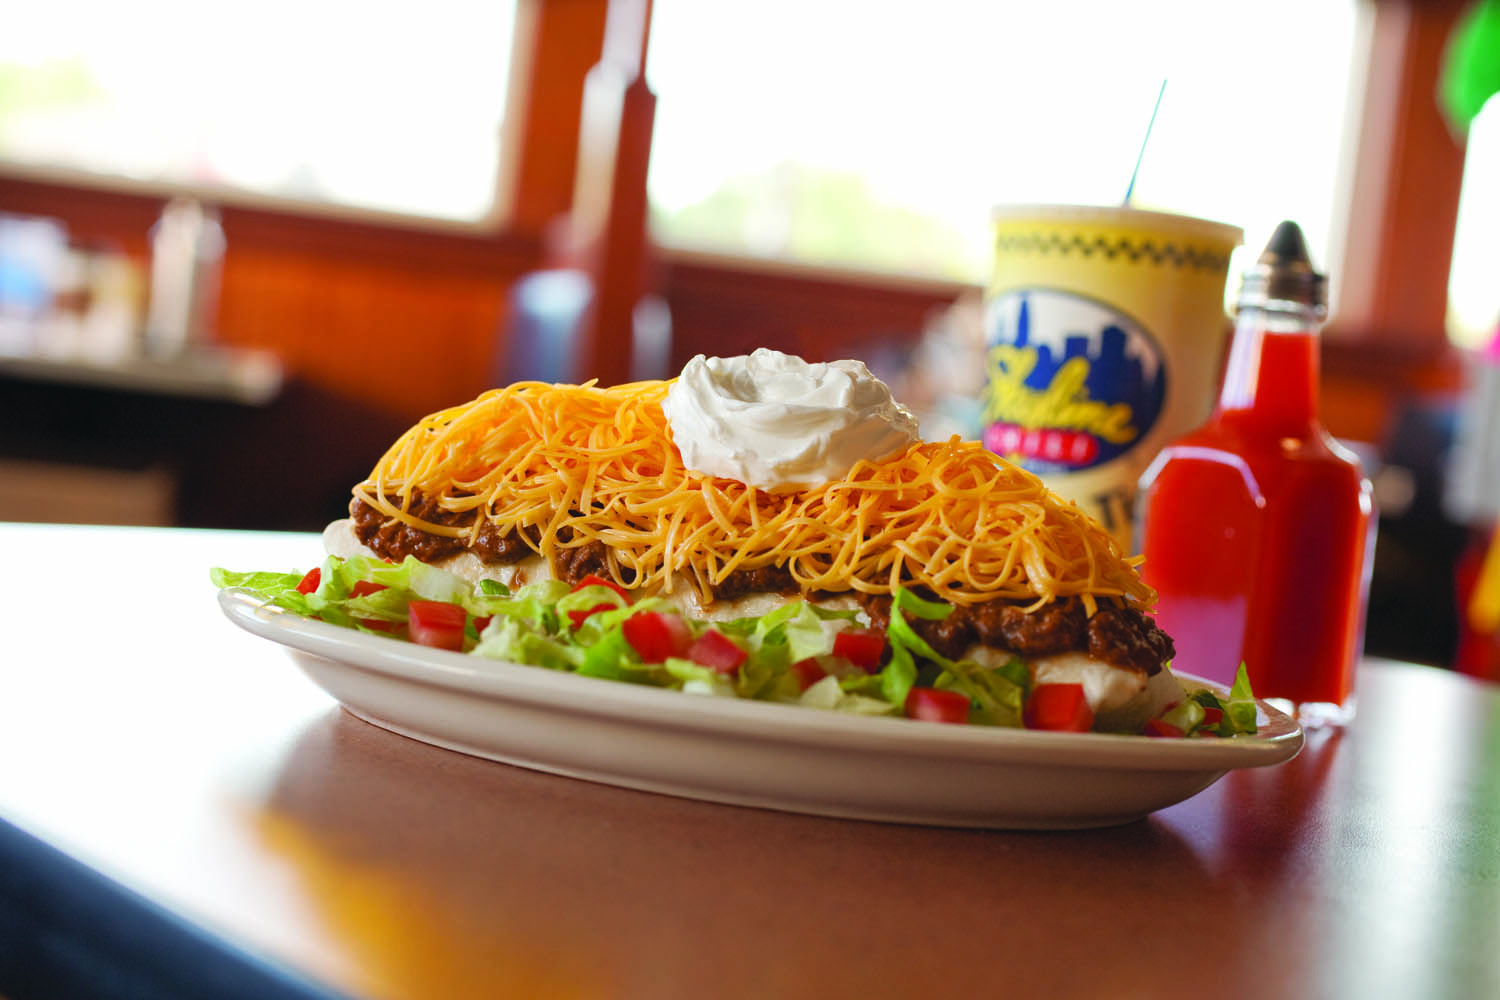 Skyline Chili, Wilmington OH